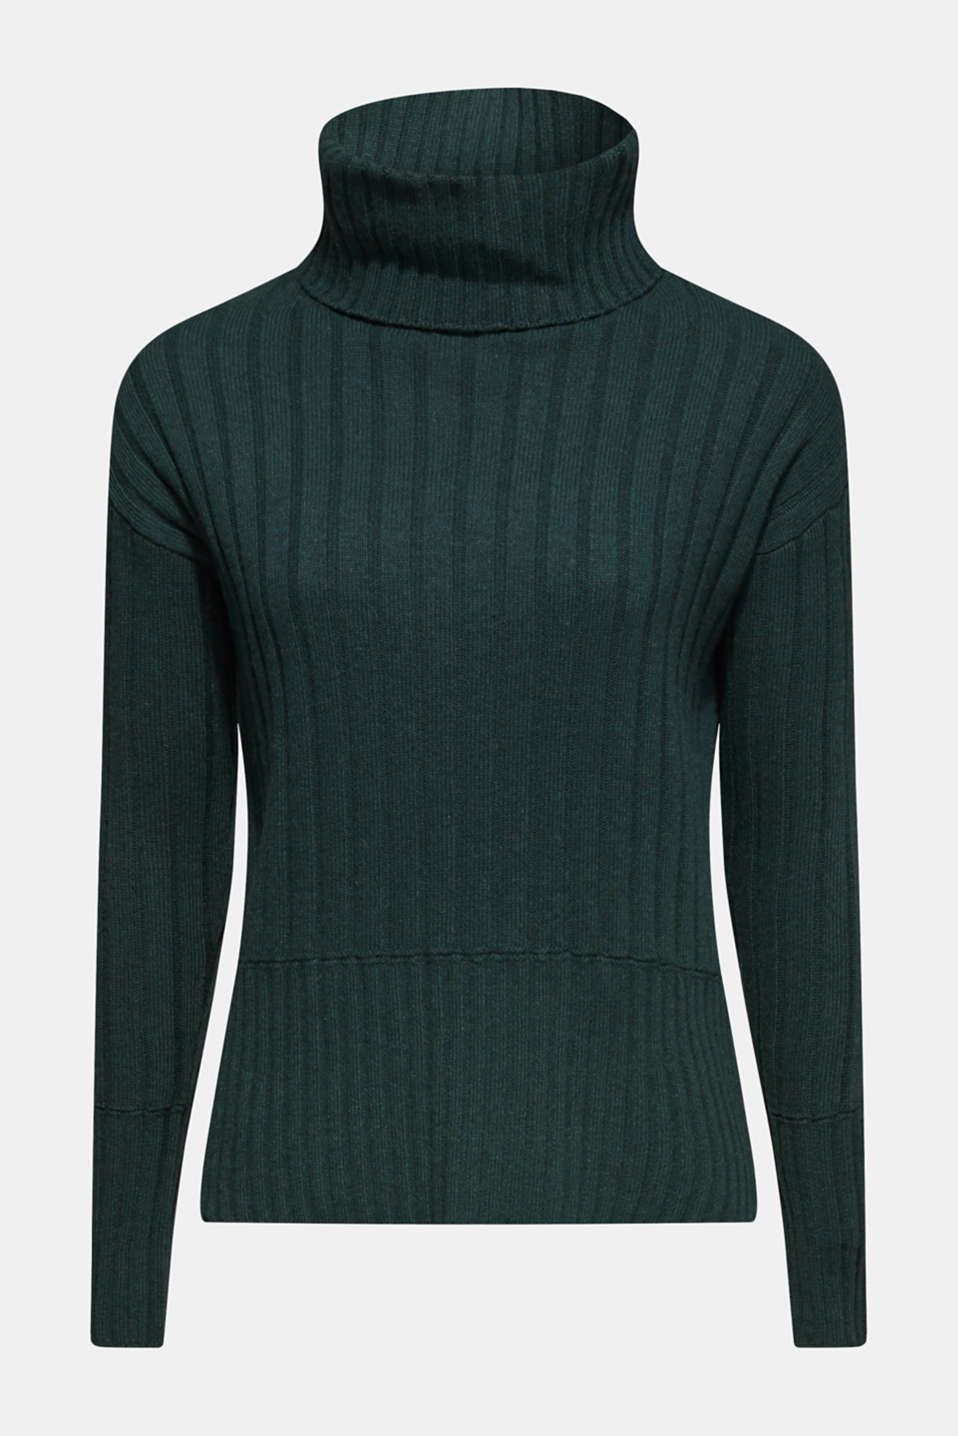 Ribbed jumper containing cashmere, DARK TEAL GREEN 5, detail image number 8